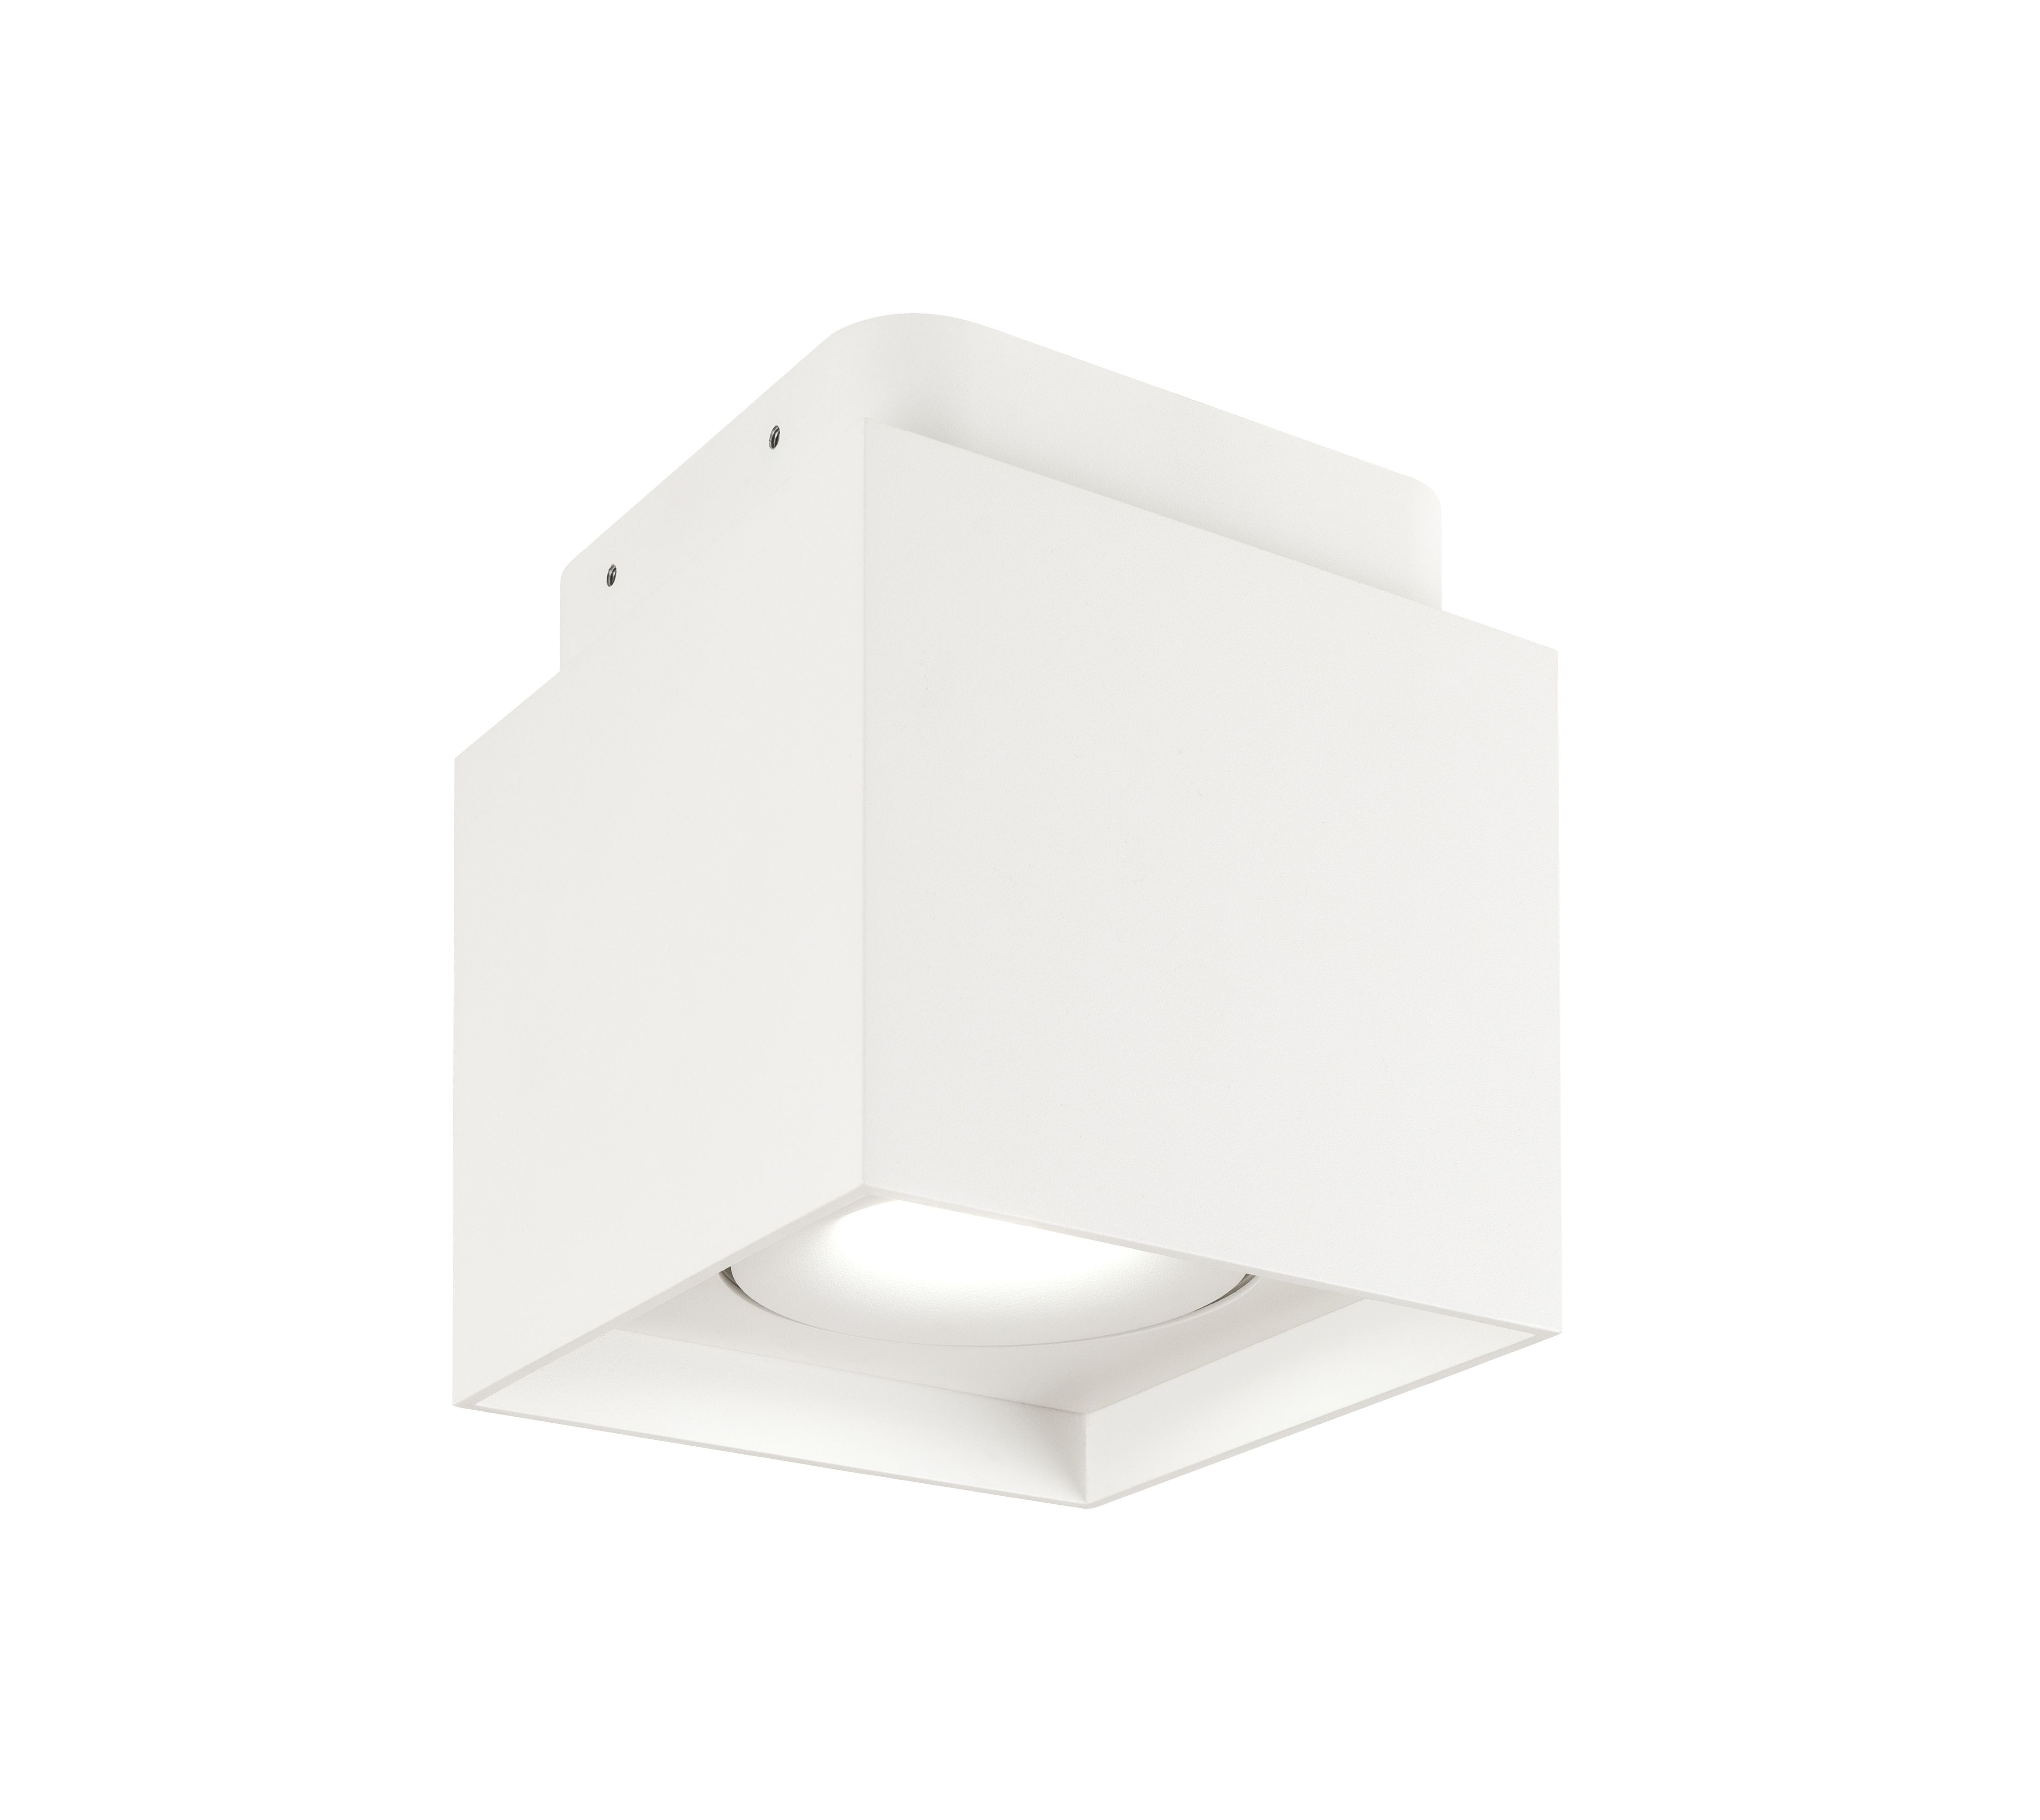 Blocco ceiling mount integrated LED light fixture | Clean and Contemporary Ceiling Mounts | Blocco -  sc 1 st  Pinterest & Blocco ceiling mount integrated LED light fixture | Clean and ... azcodes.com